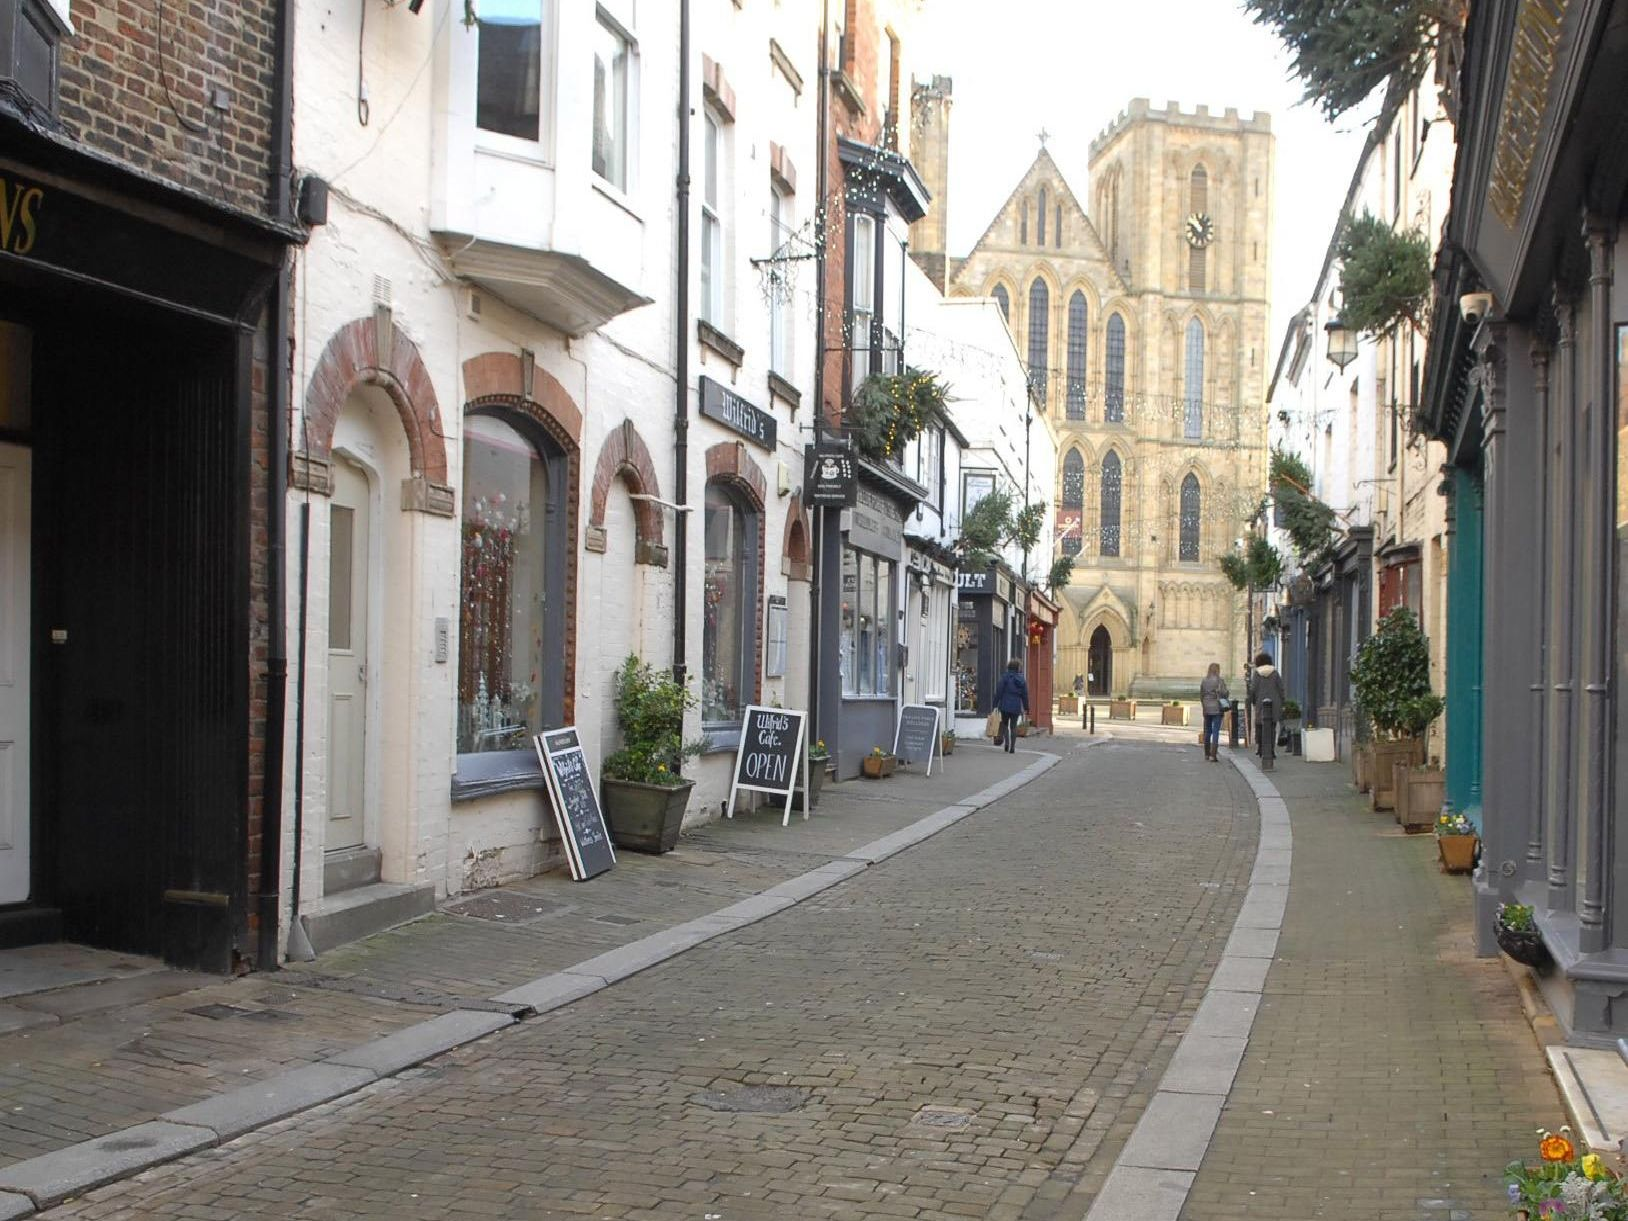 Ripon's full of attractions for residents and visitors alike.